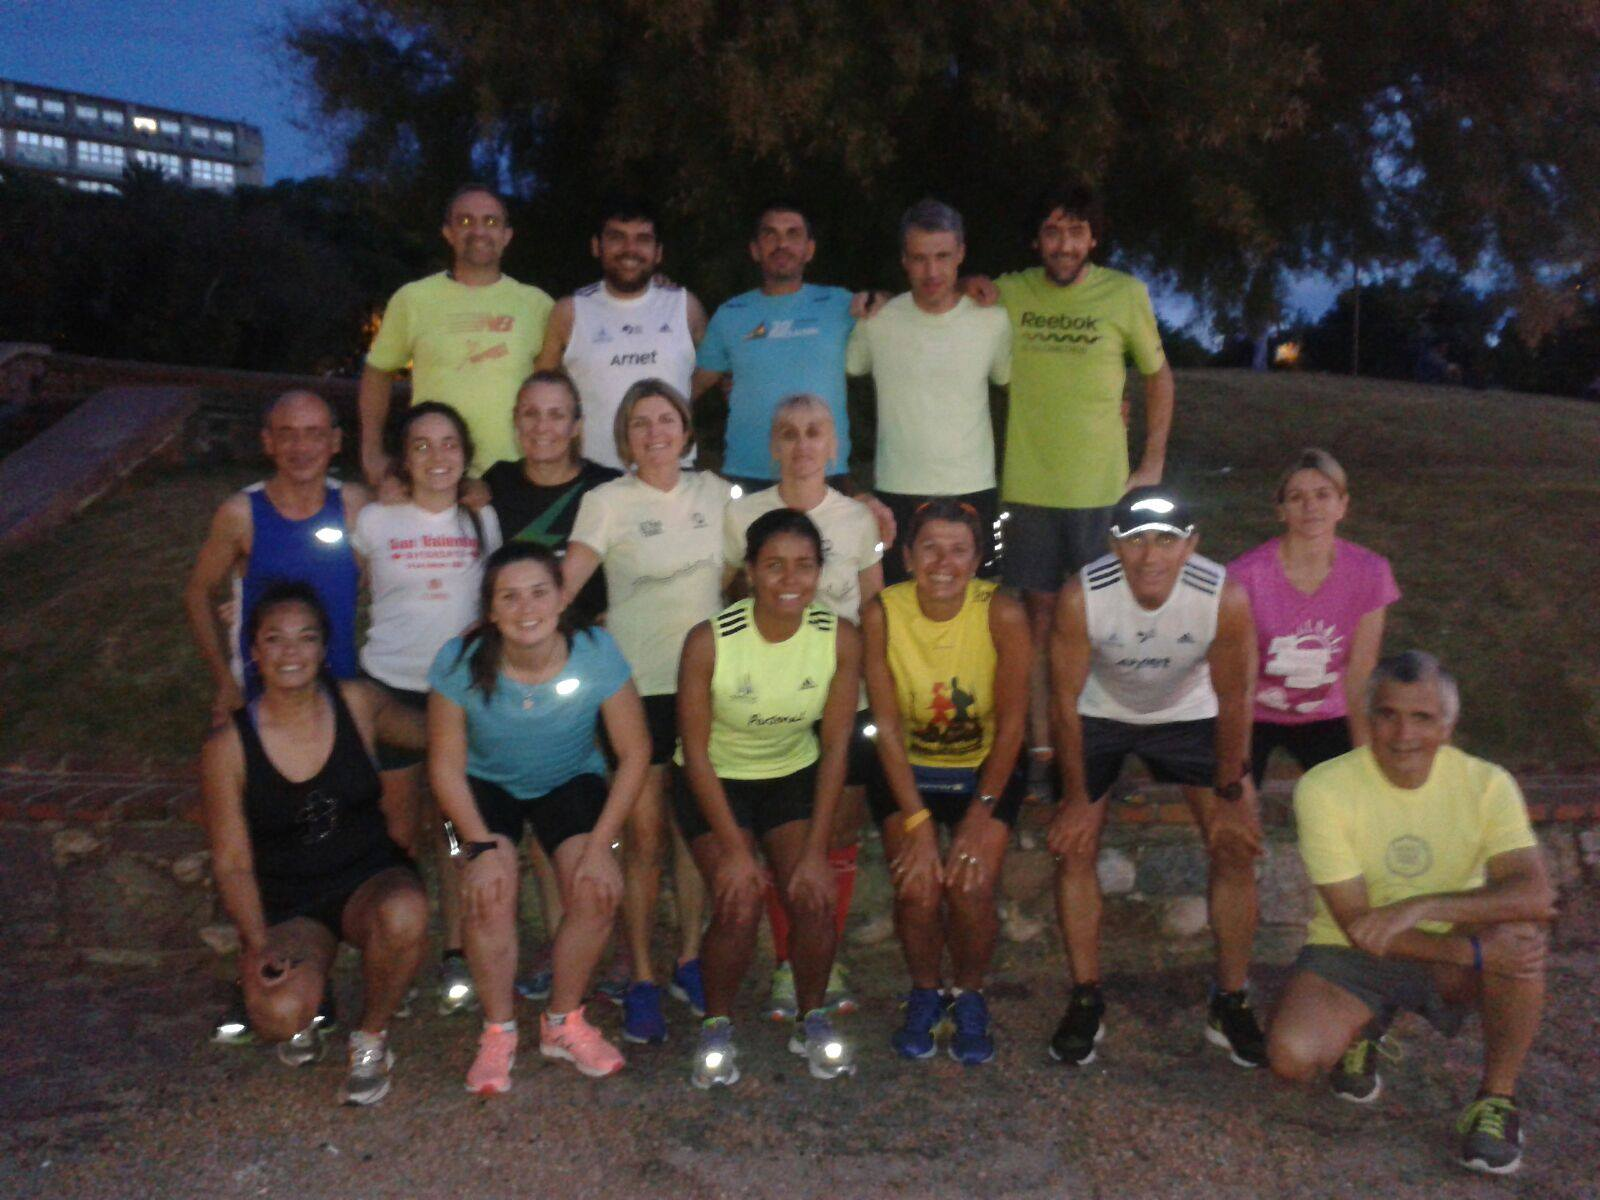 Triple Golf (convocatoria a correr en barra)